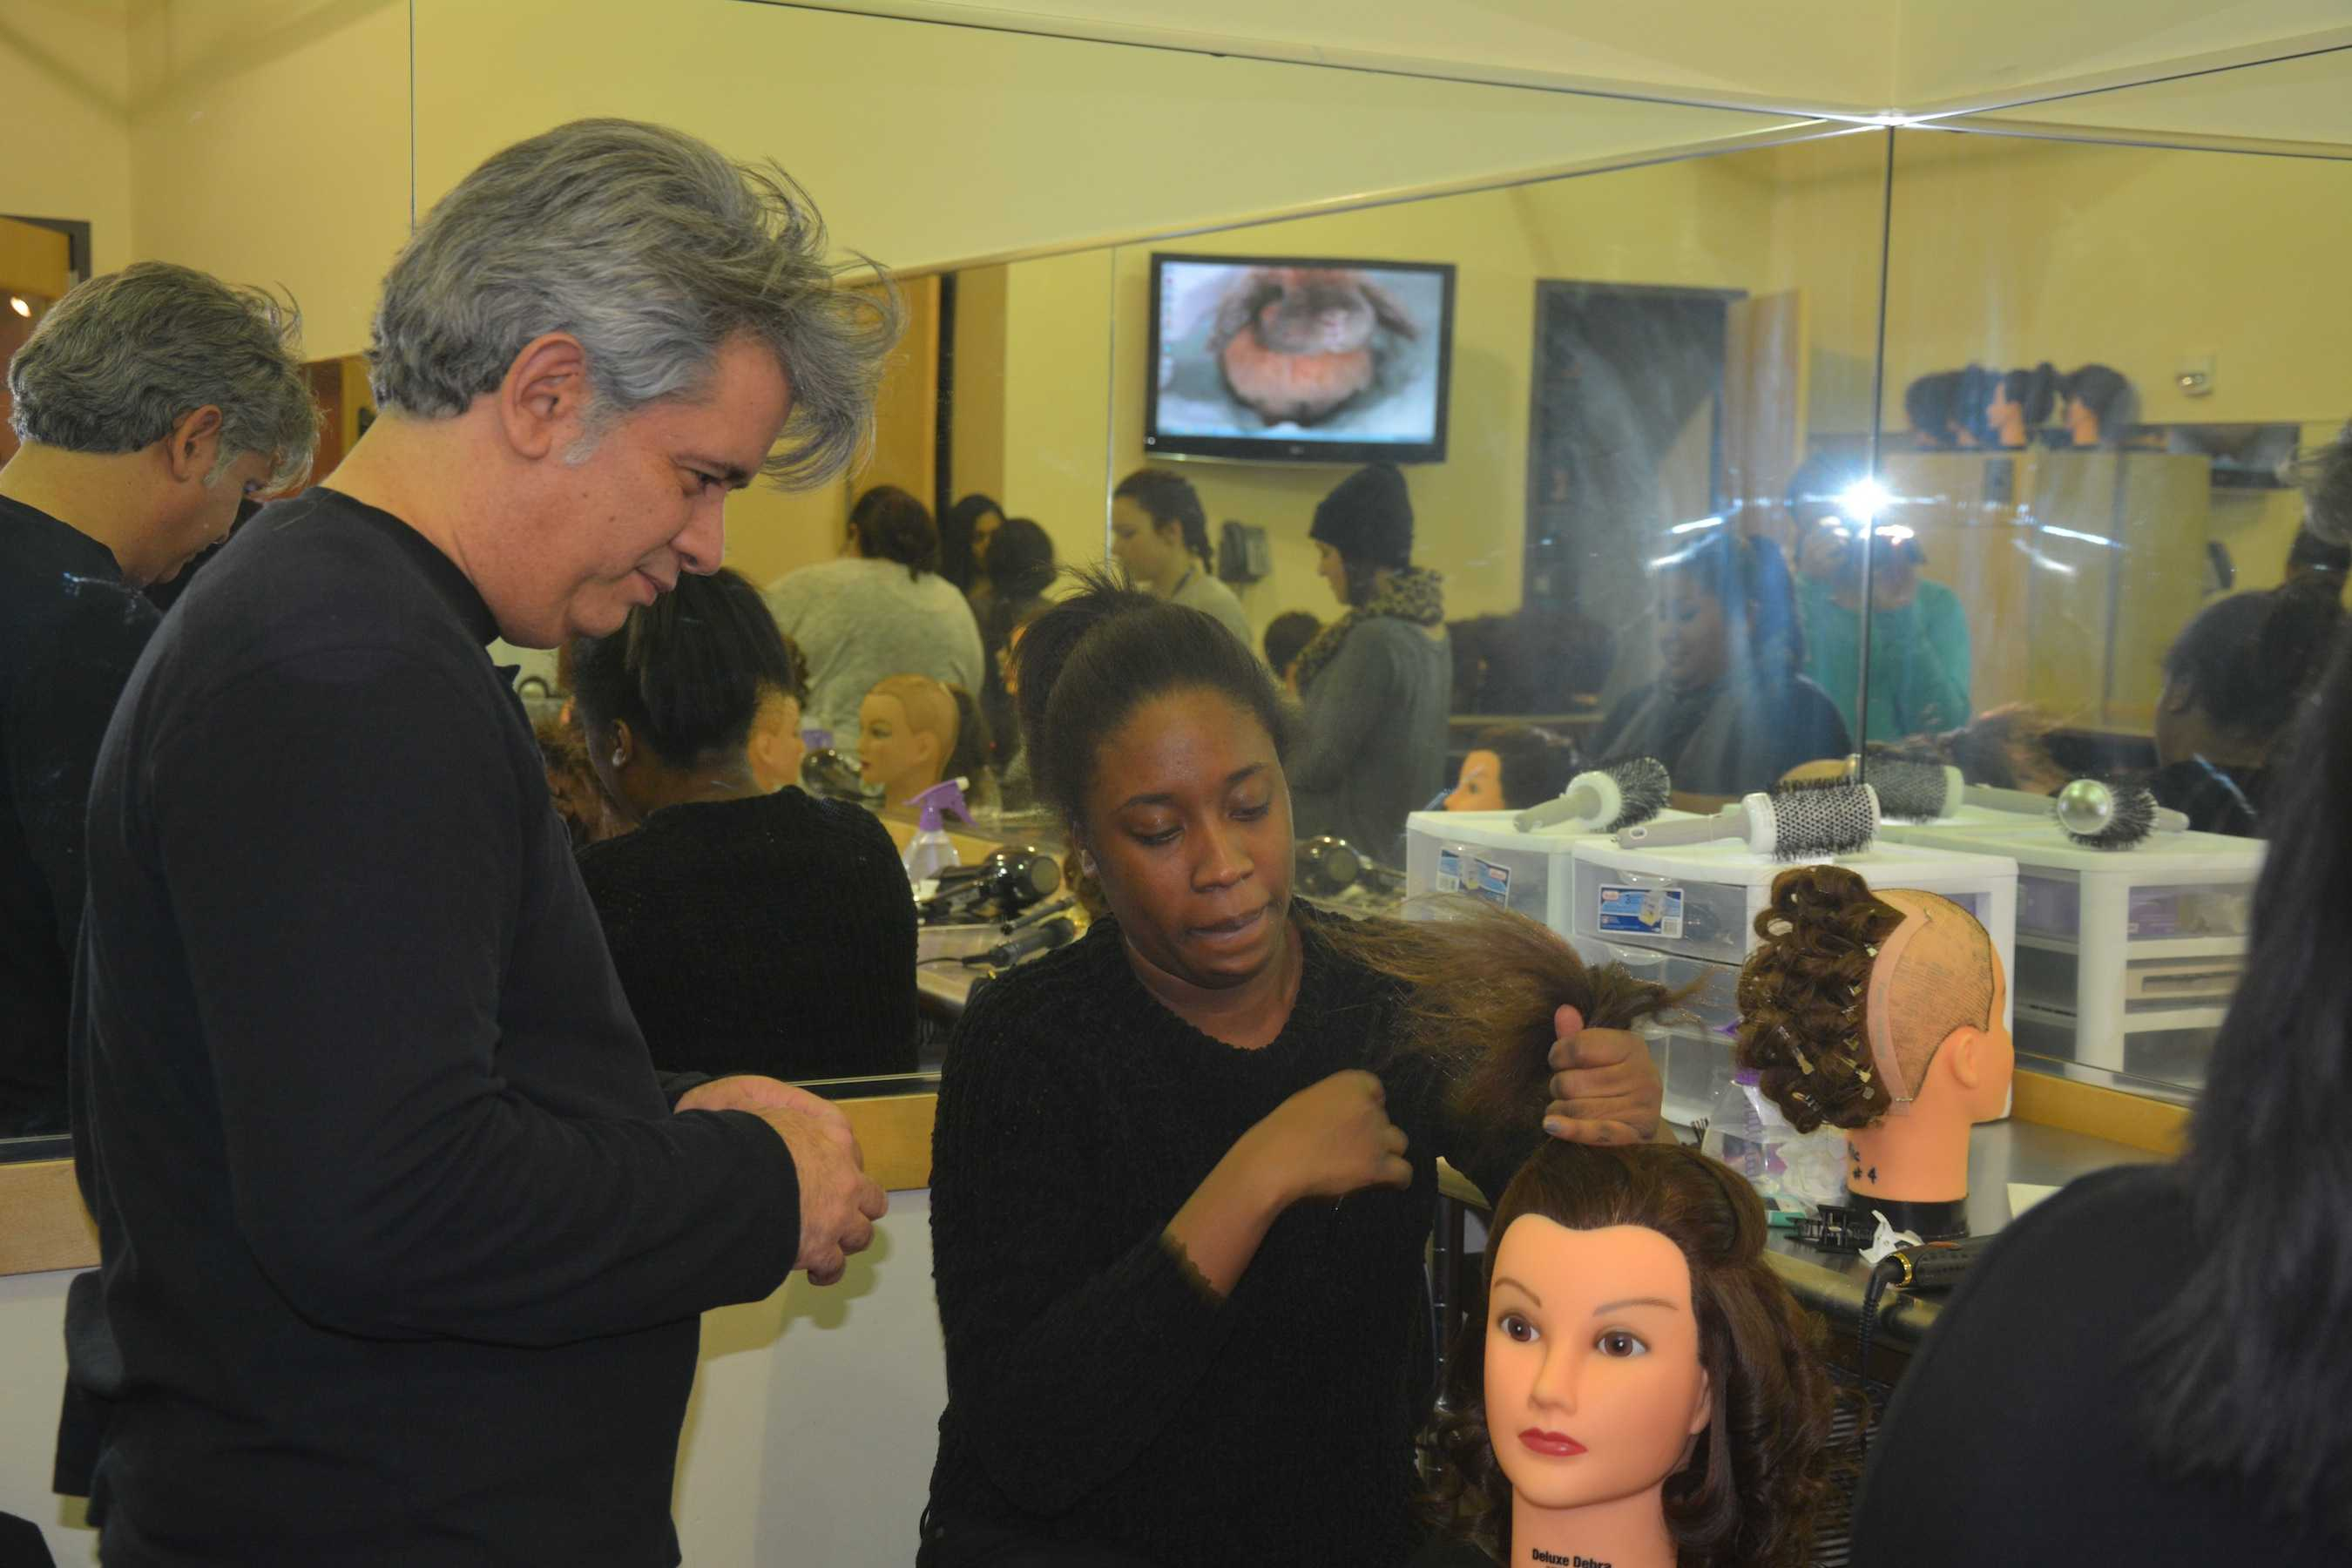 Students learn services including manicures, makeup applications, facials, haircuts, styling and more.